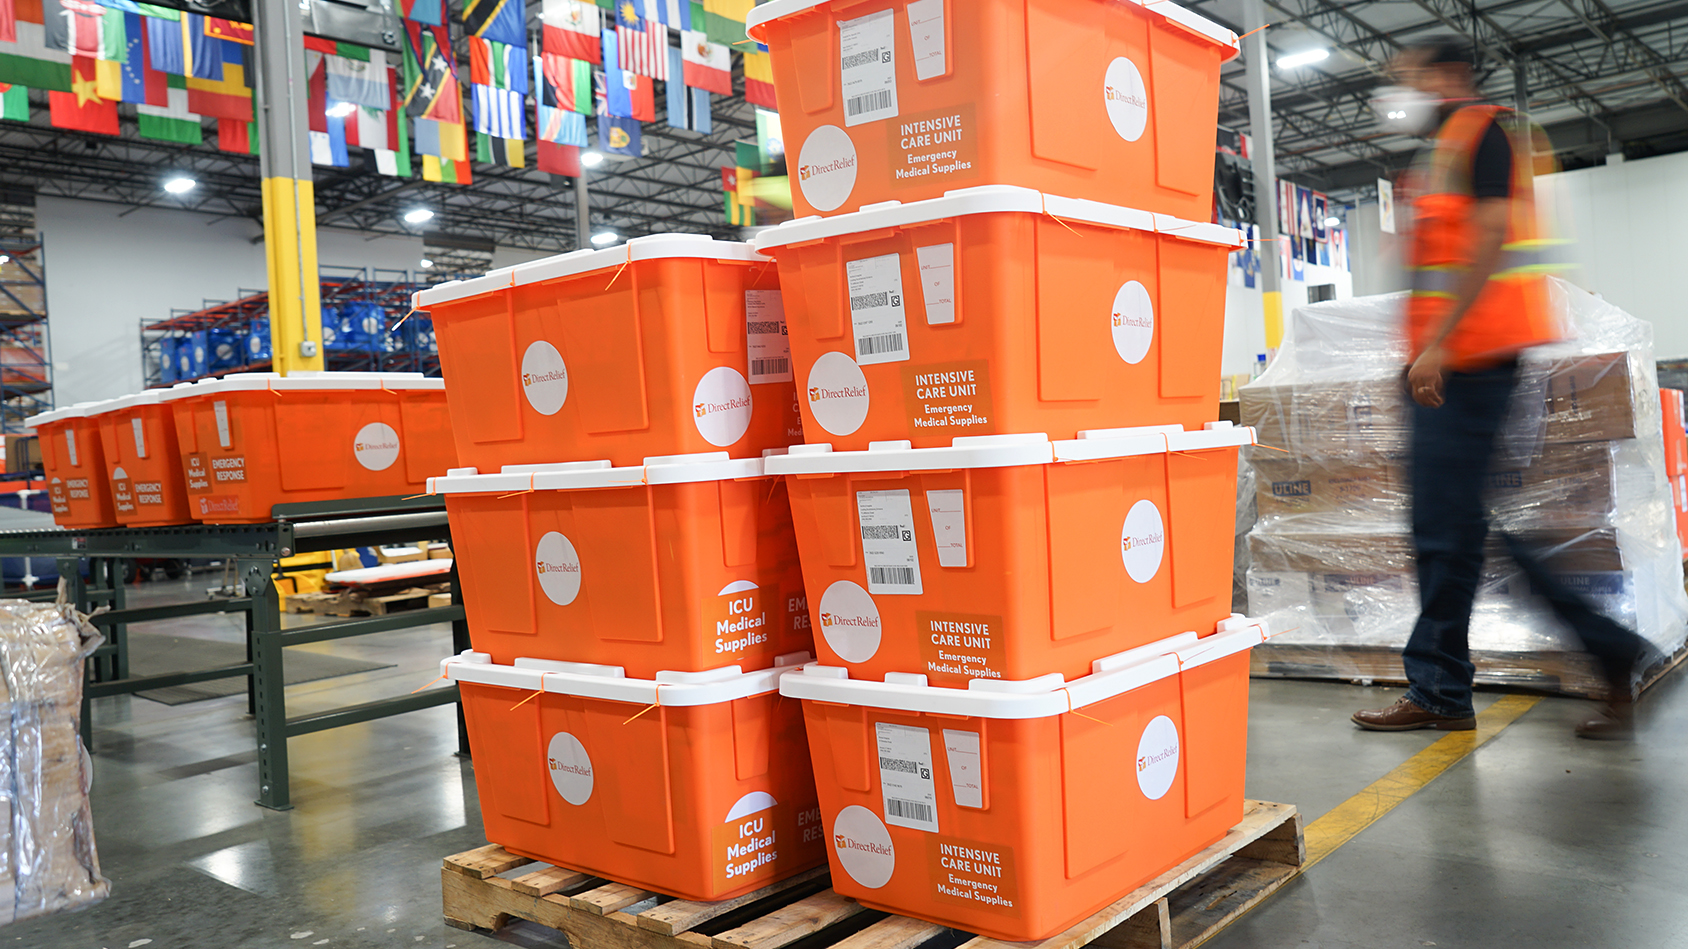 Medicines essential for ICU care of Covid-19 patients are prepped for shipment in Direct Relief's warehouse on April 24, 2020. The modules contain medicines needed to care for complications of Covid-19, including bacterial pneumonia and septic shock. (Lara Cooper/Direct Relief)